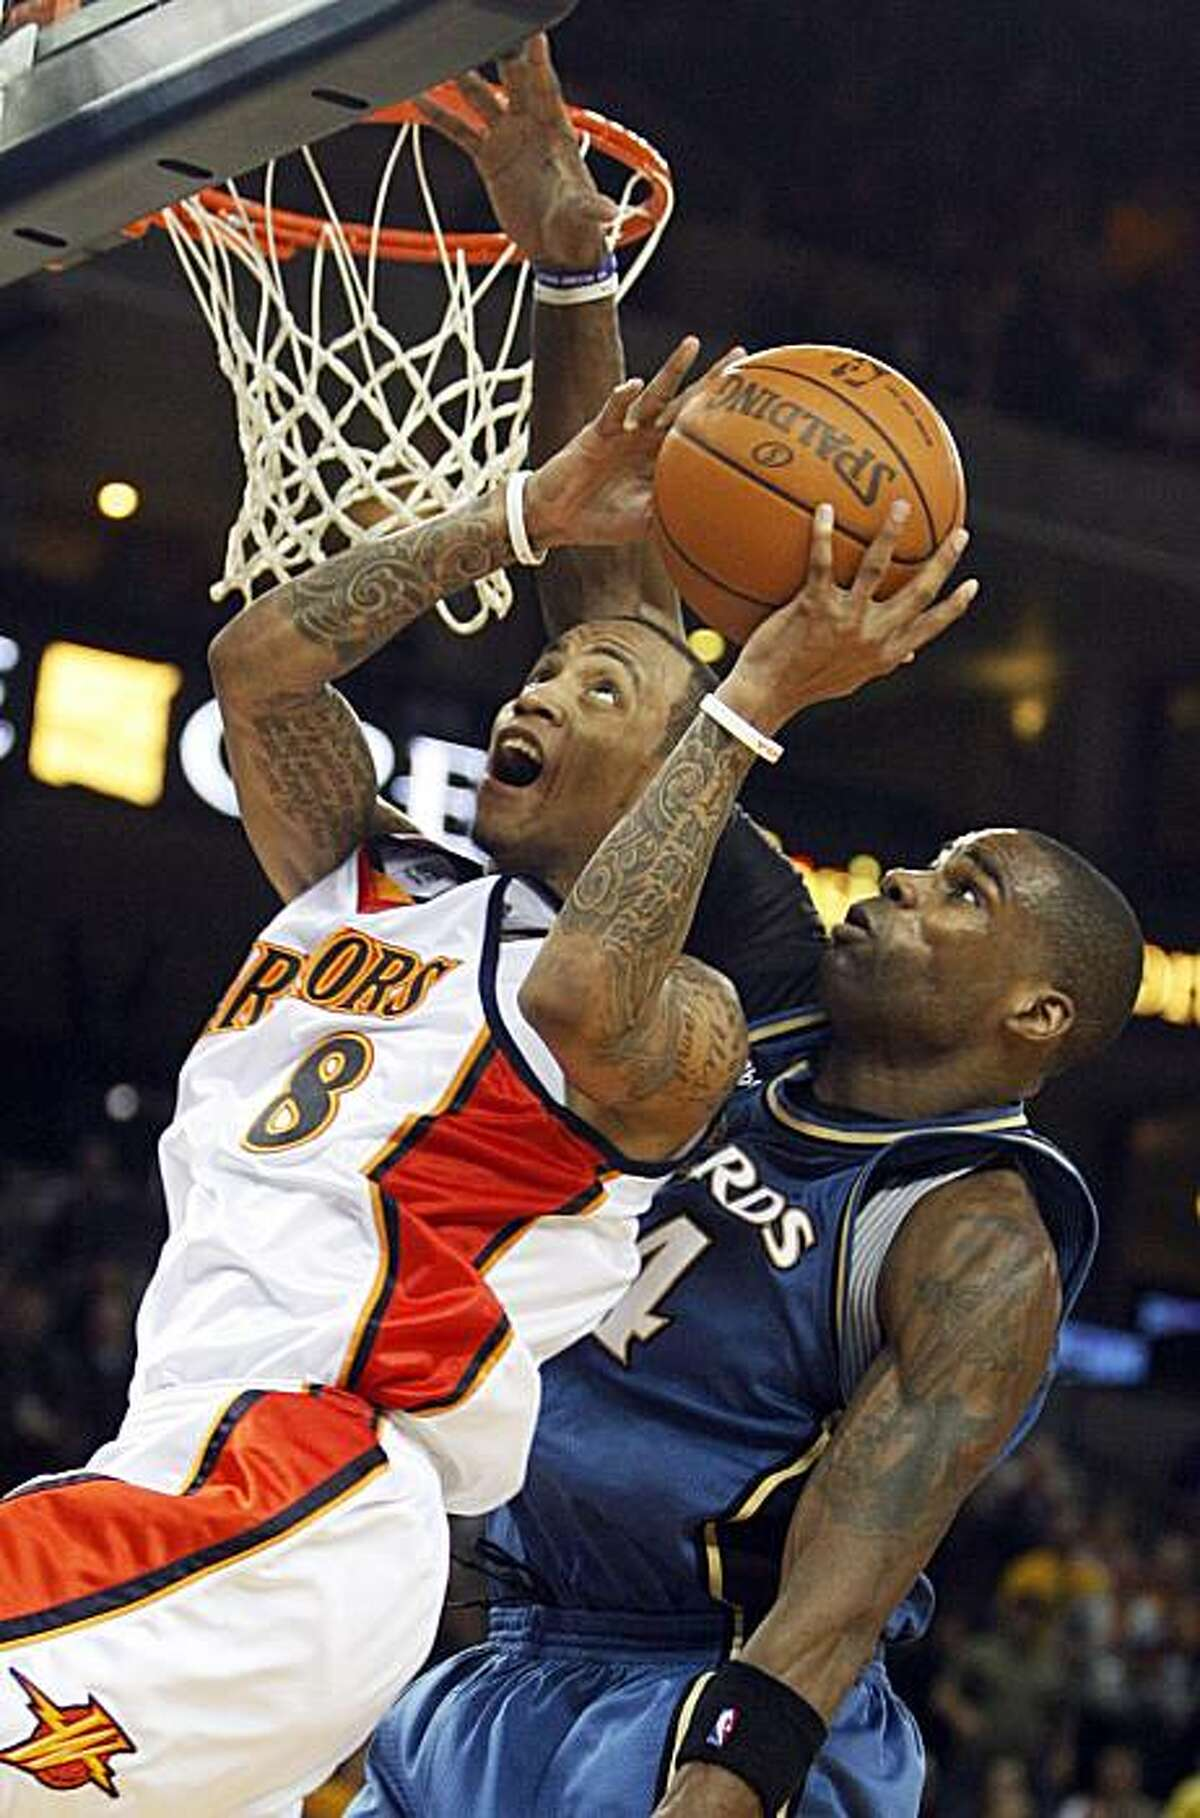 Golden State Warriors' Monta Ellis (8) goes up for a shot against Washington Wizards' Antawn Jamison during the second half of an NBA basketball game Friday, Dec. 18, 2009, in Oakland, Calif. (AP Photo/Ben Margot)